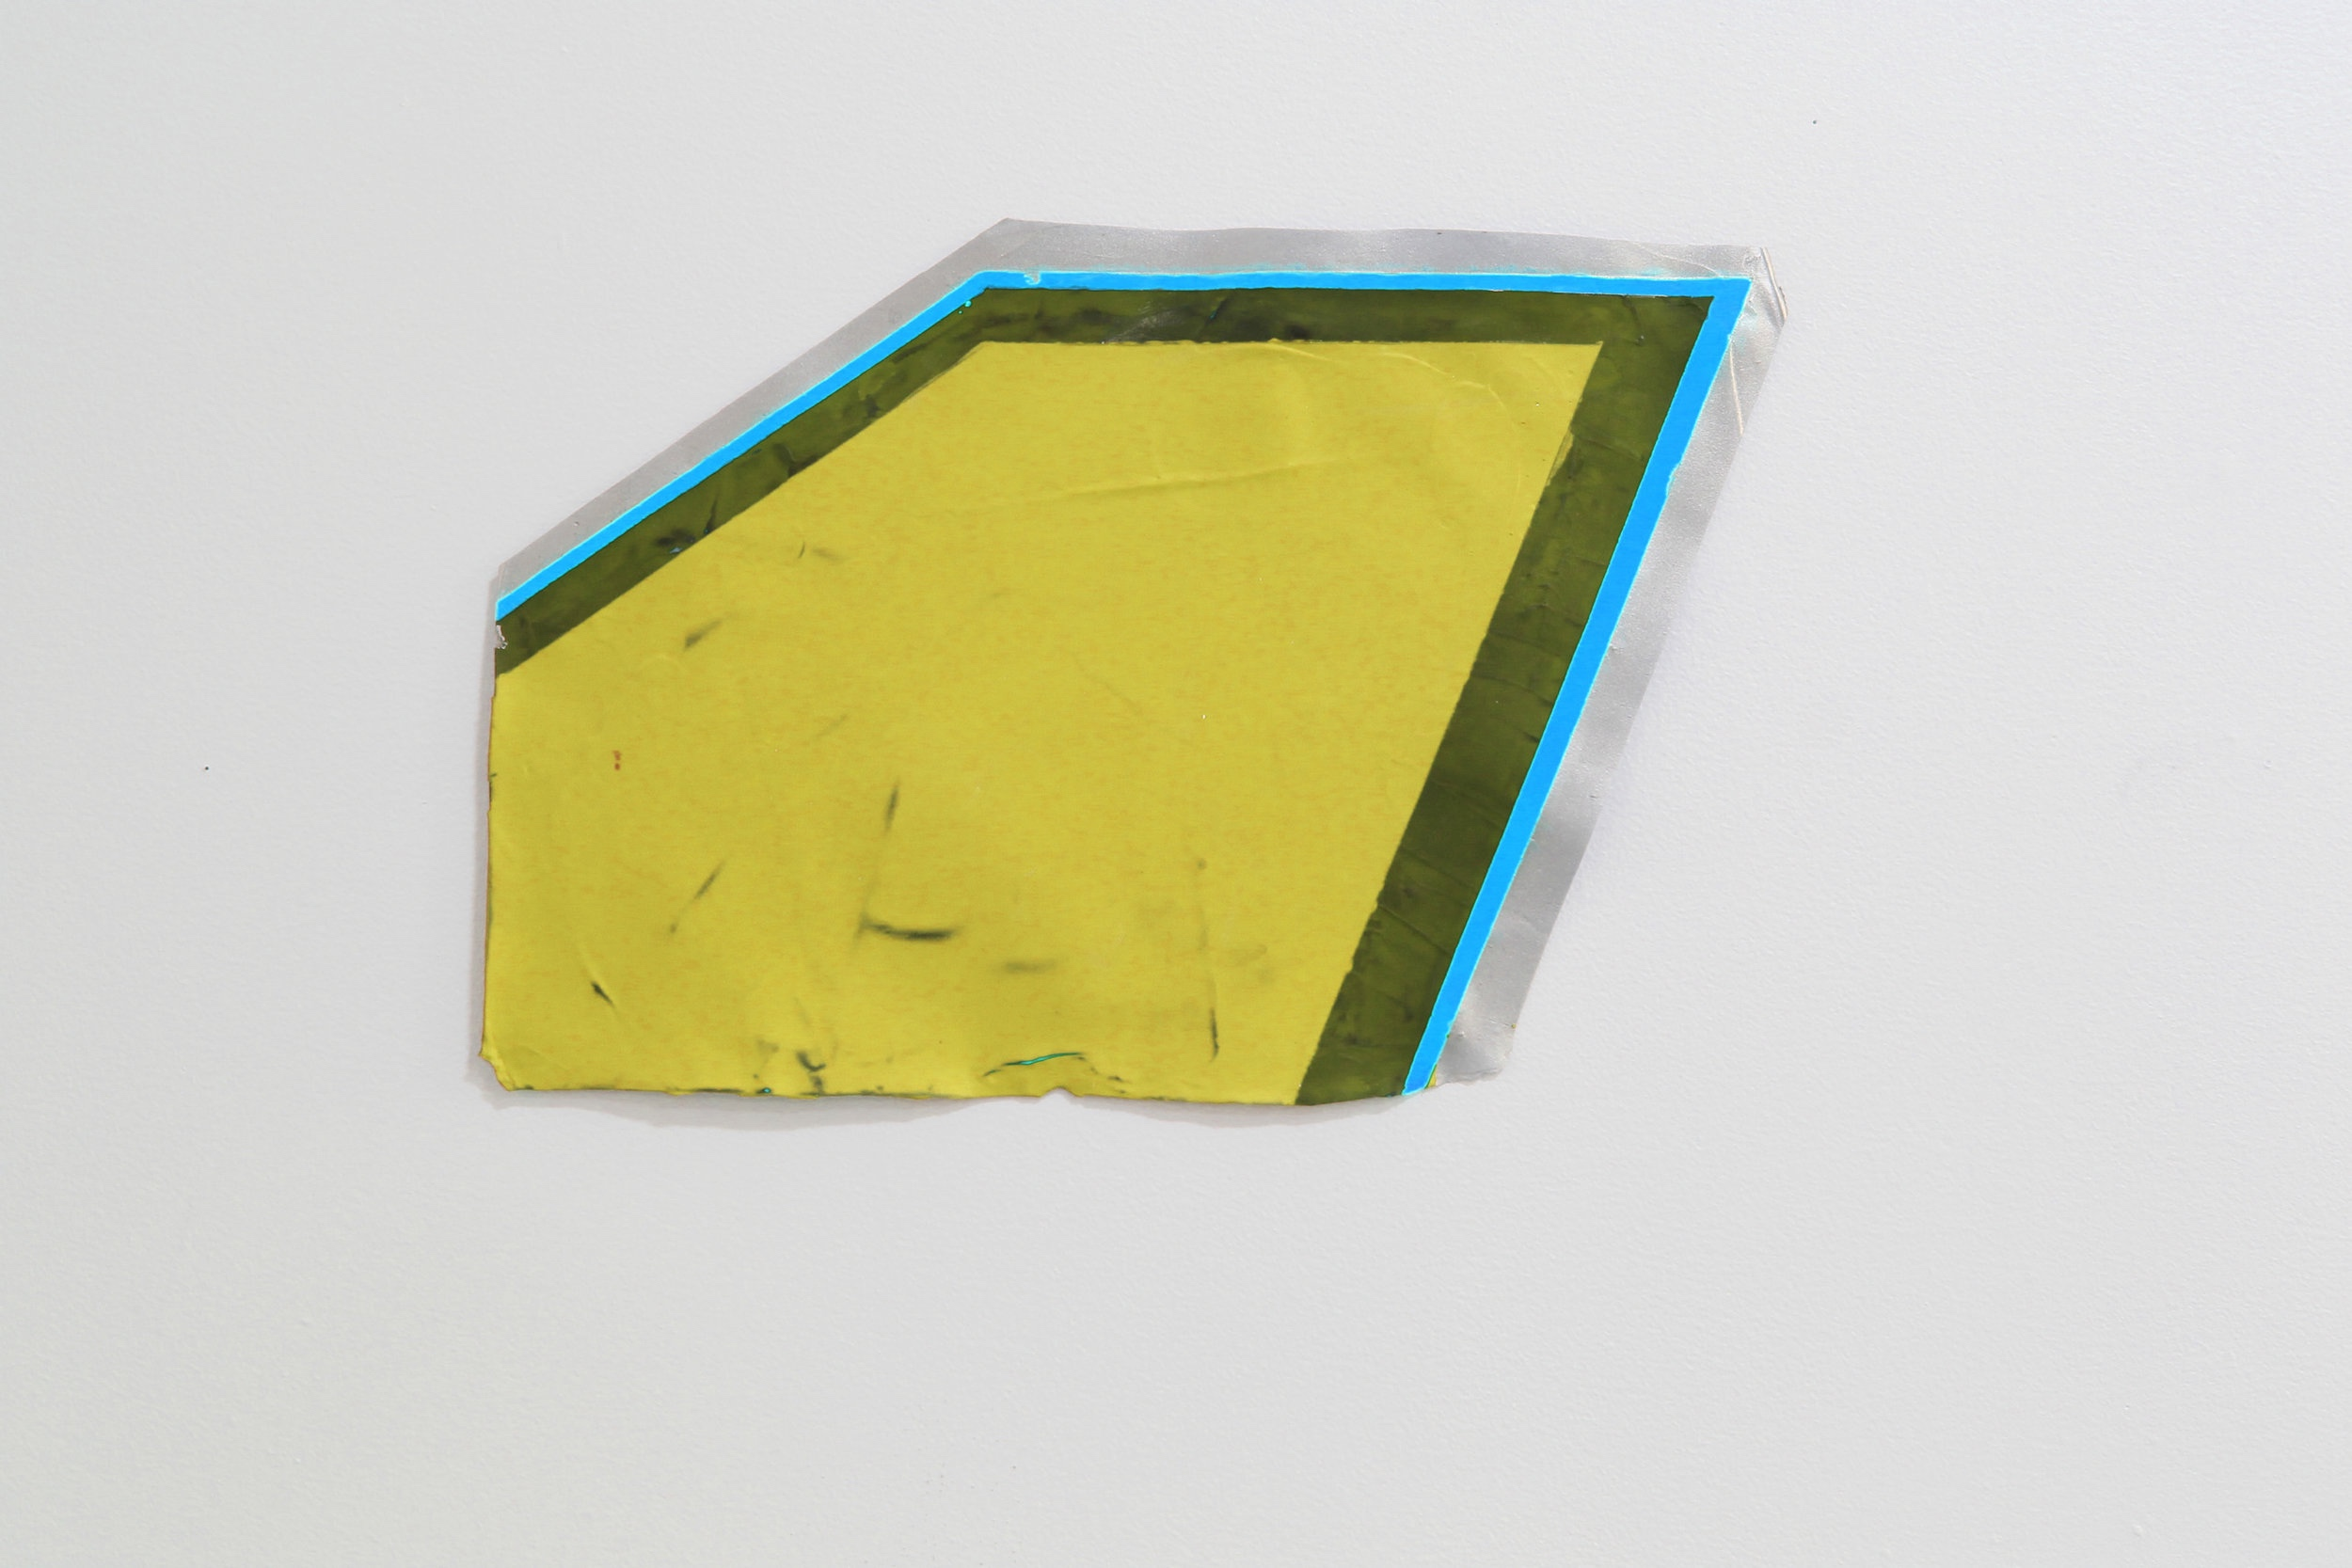 """geometric pool"" acrylic on acrylic skin, variable size"